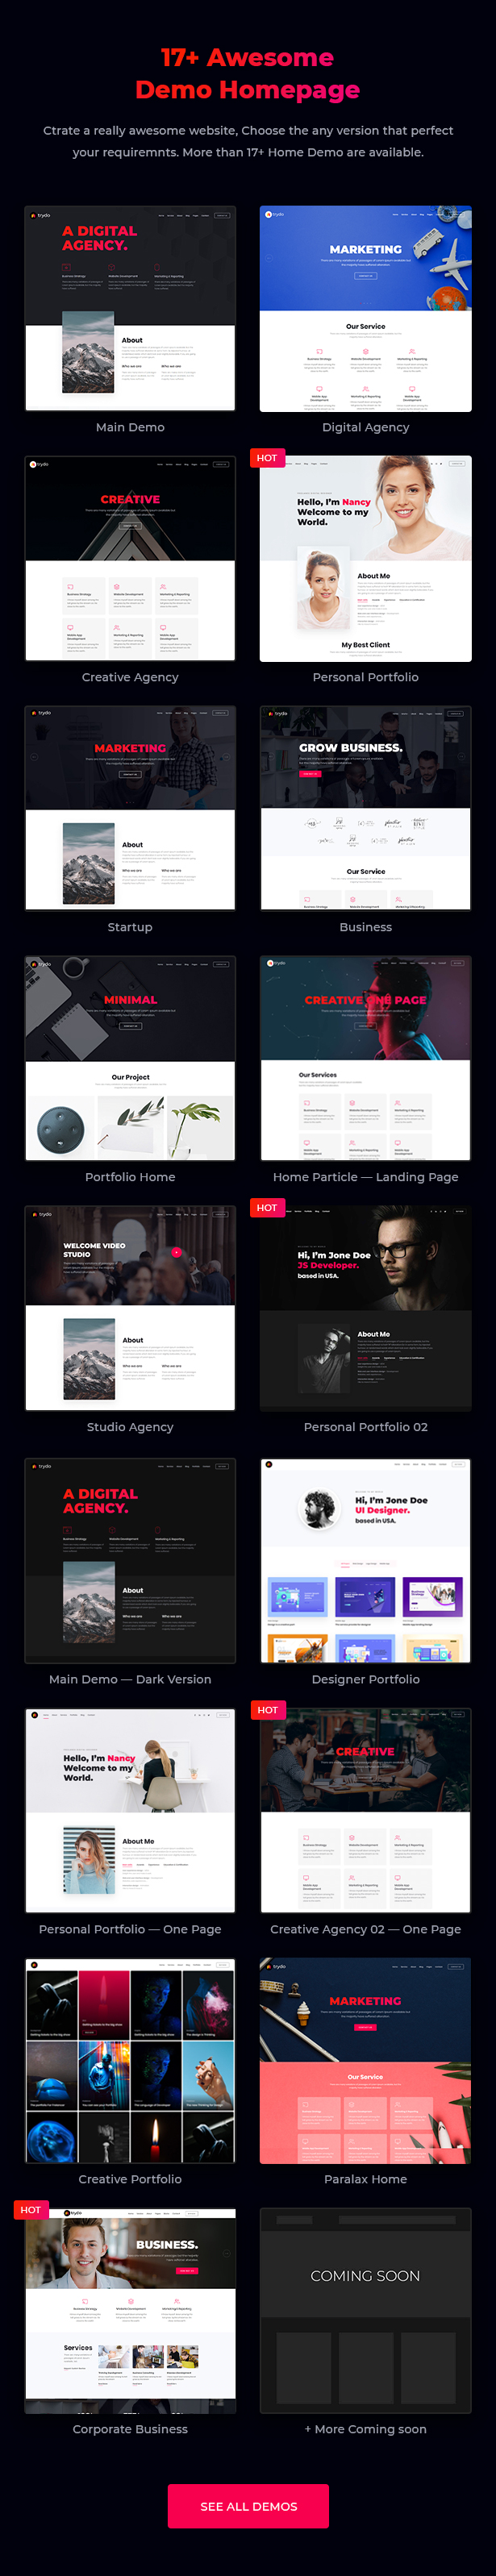 Trydo - Creative Agency & Portfolio WordPress Theme - 8